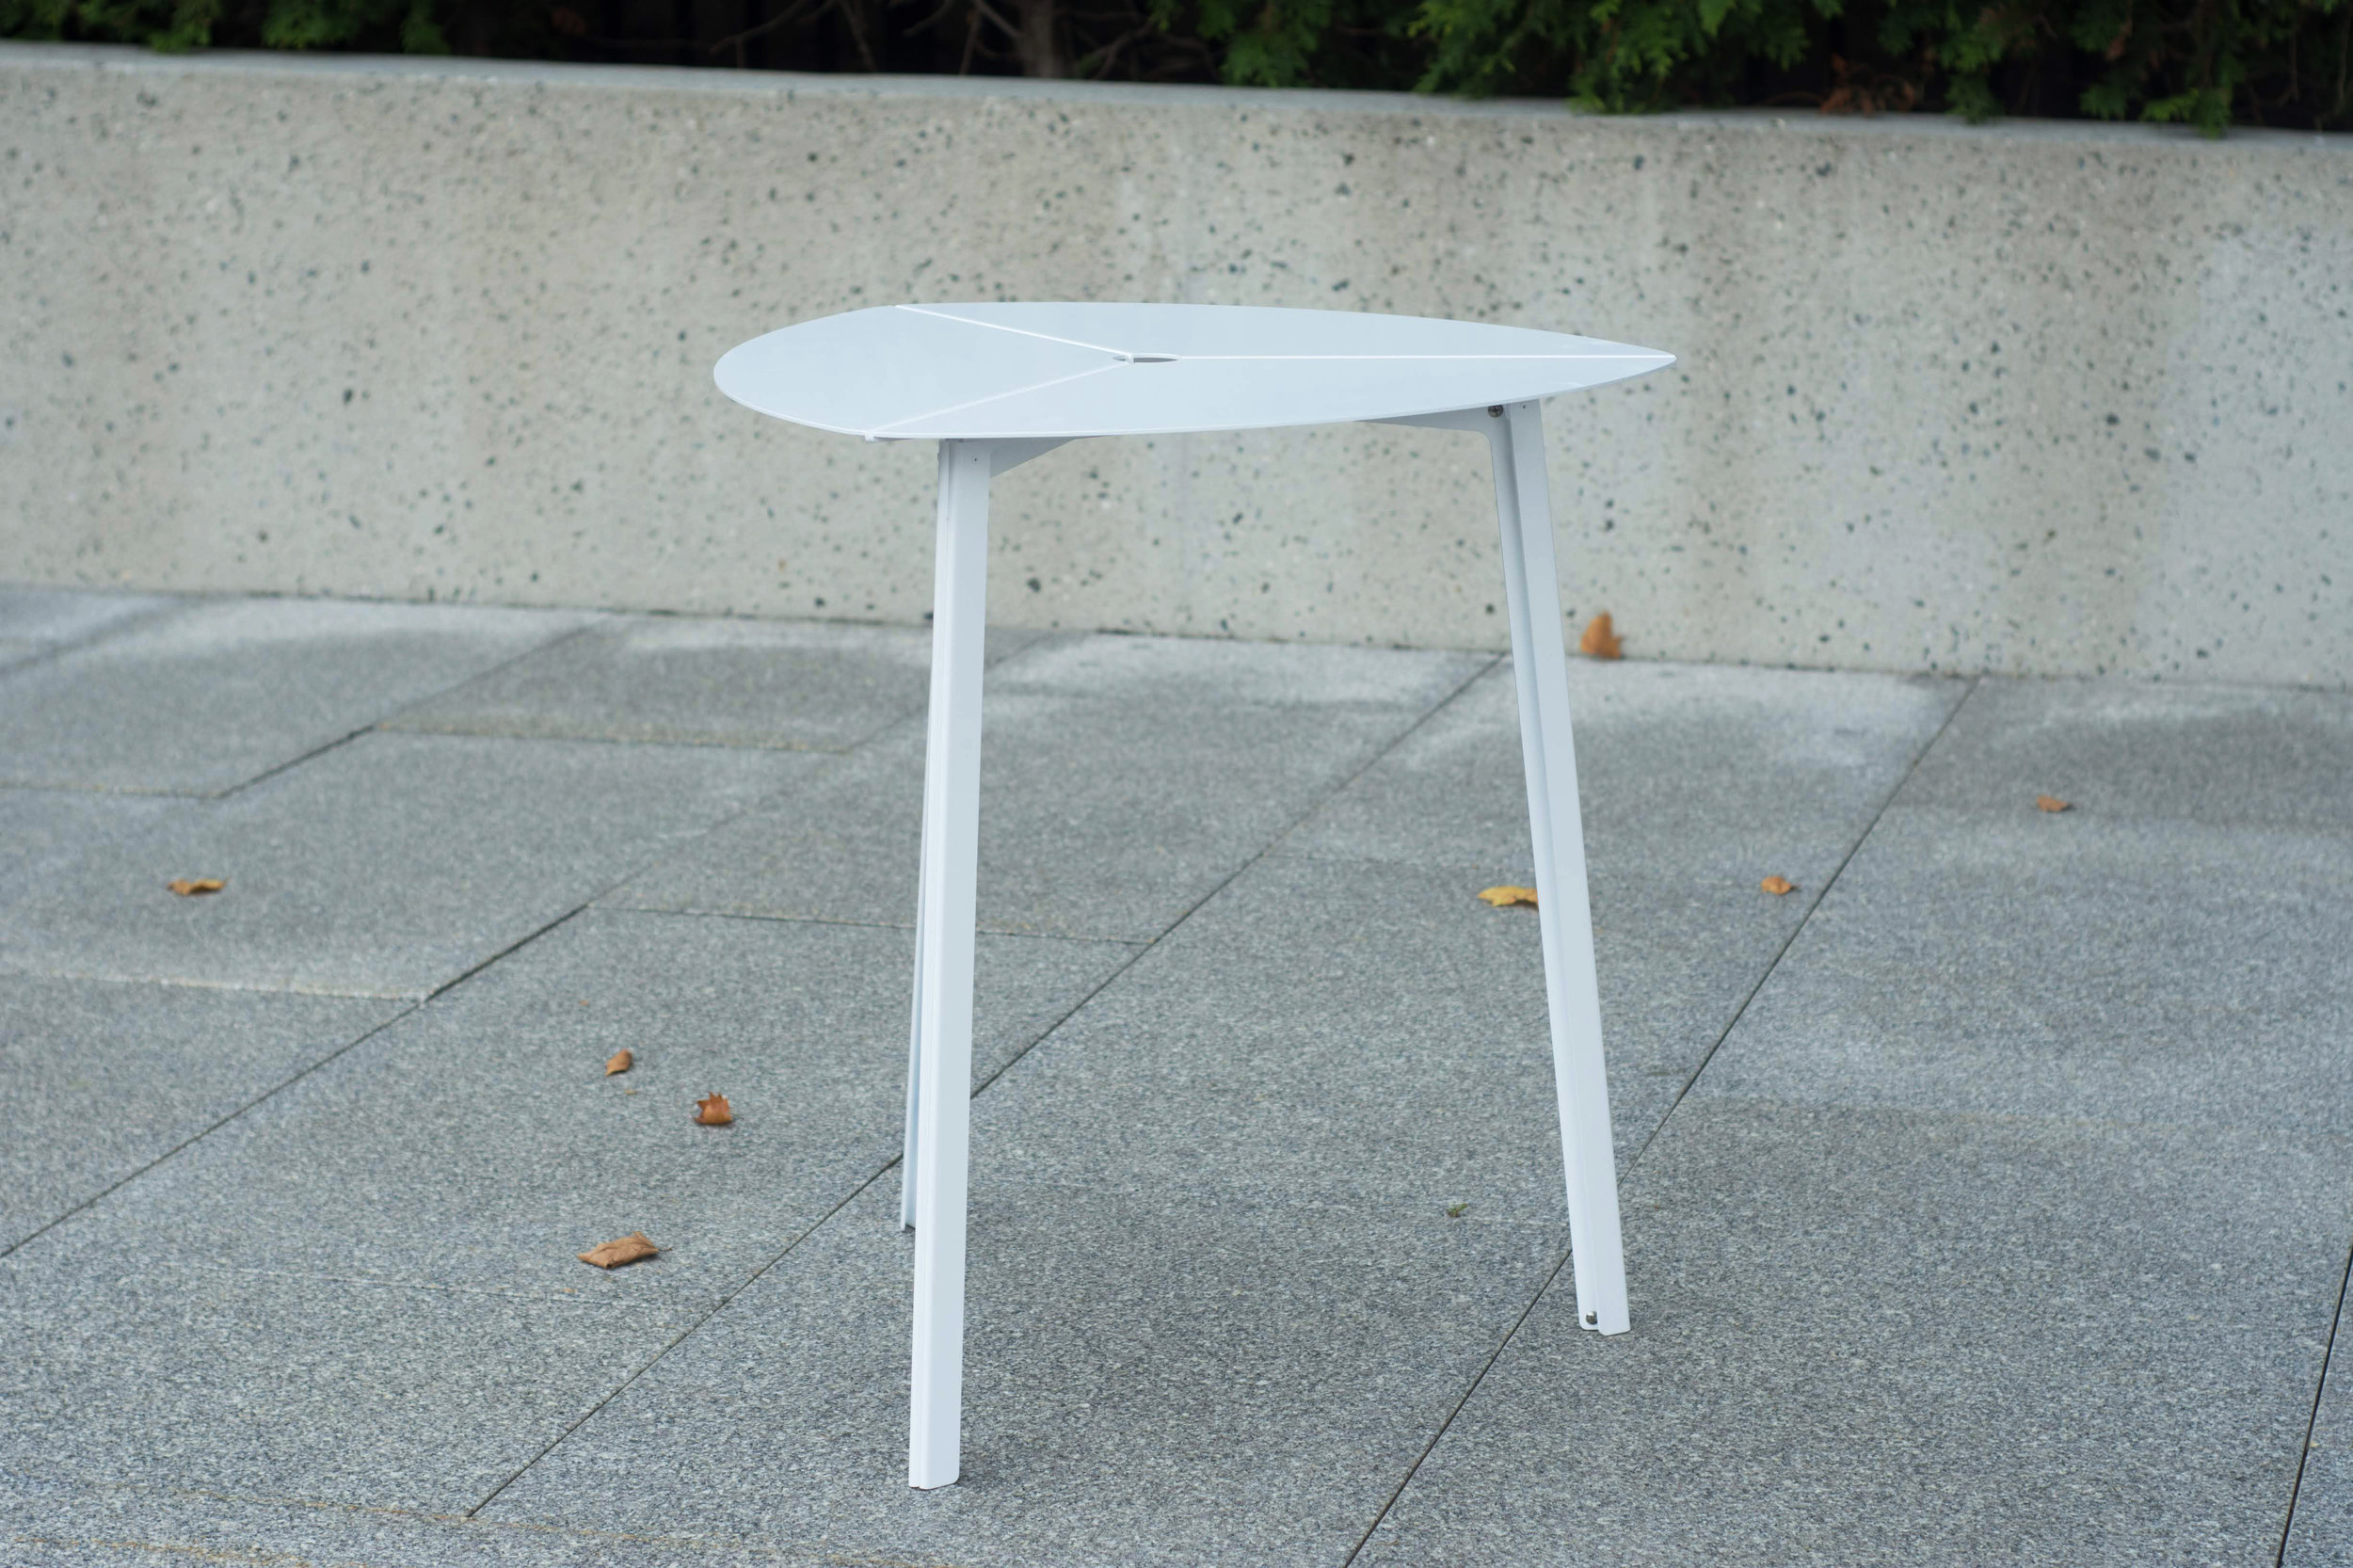 Third Bistro Table - Studio Shot, Architecture, White.jpg